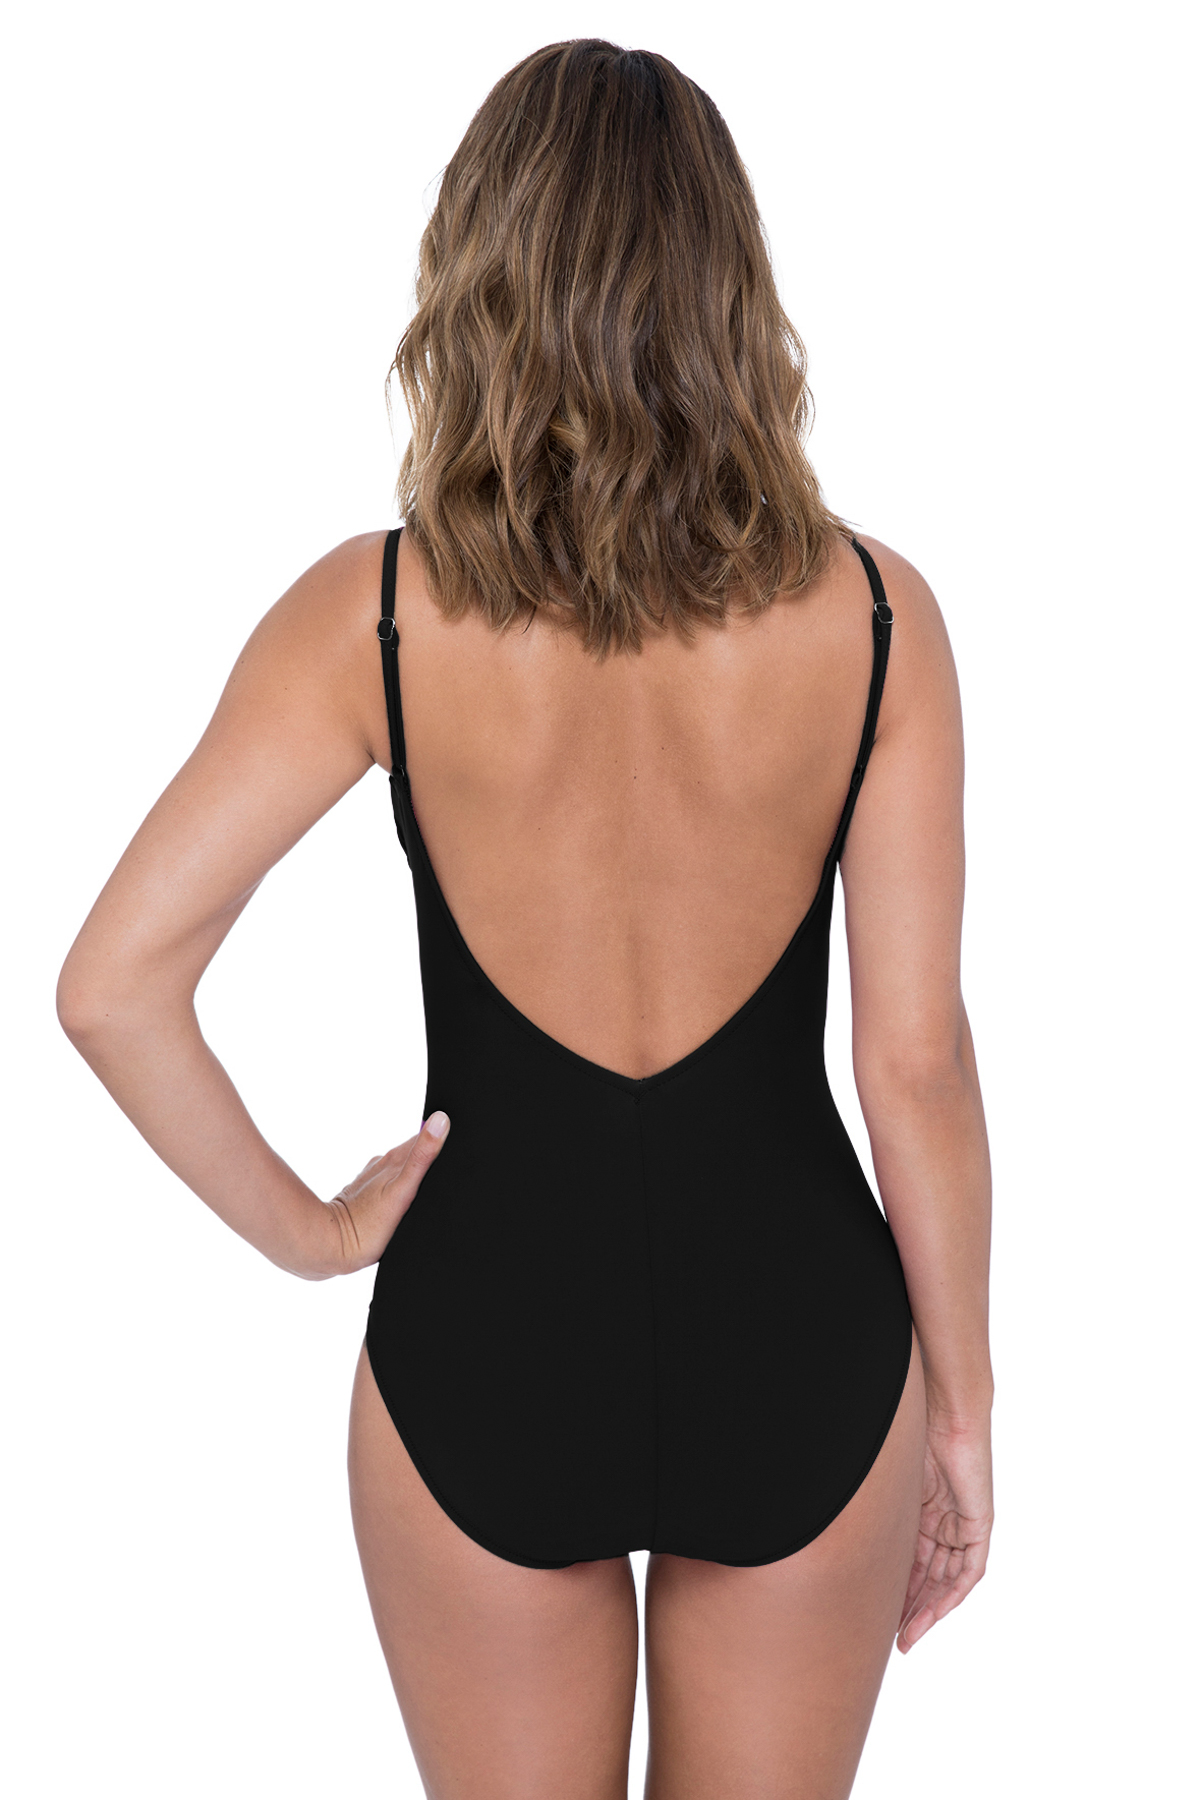 41cfe72cff29d Profile by Gottex s Love n Lace Ladder Plunge One Piece Swimsuit